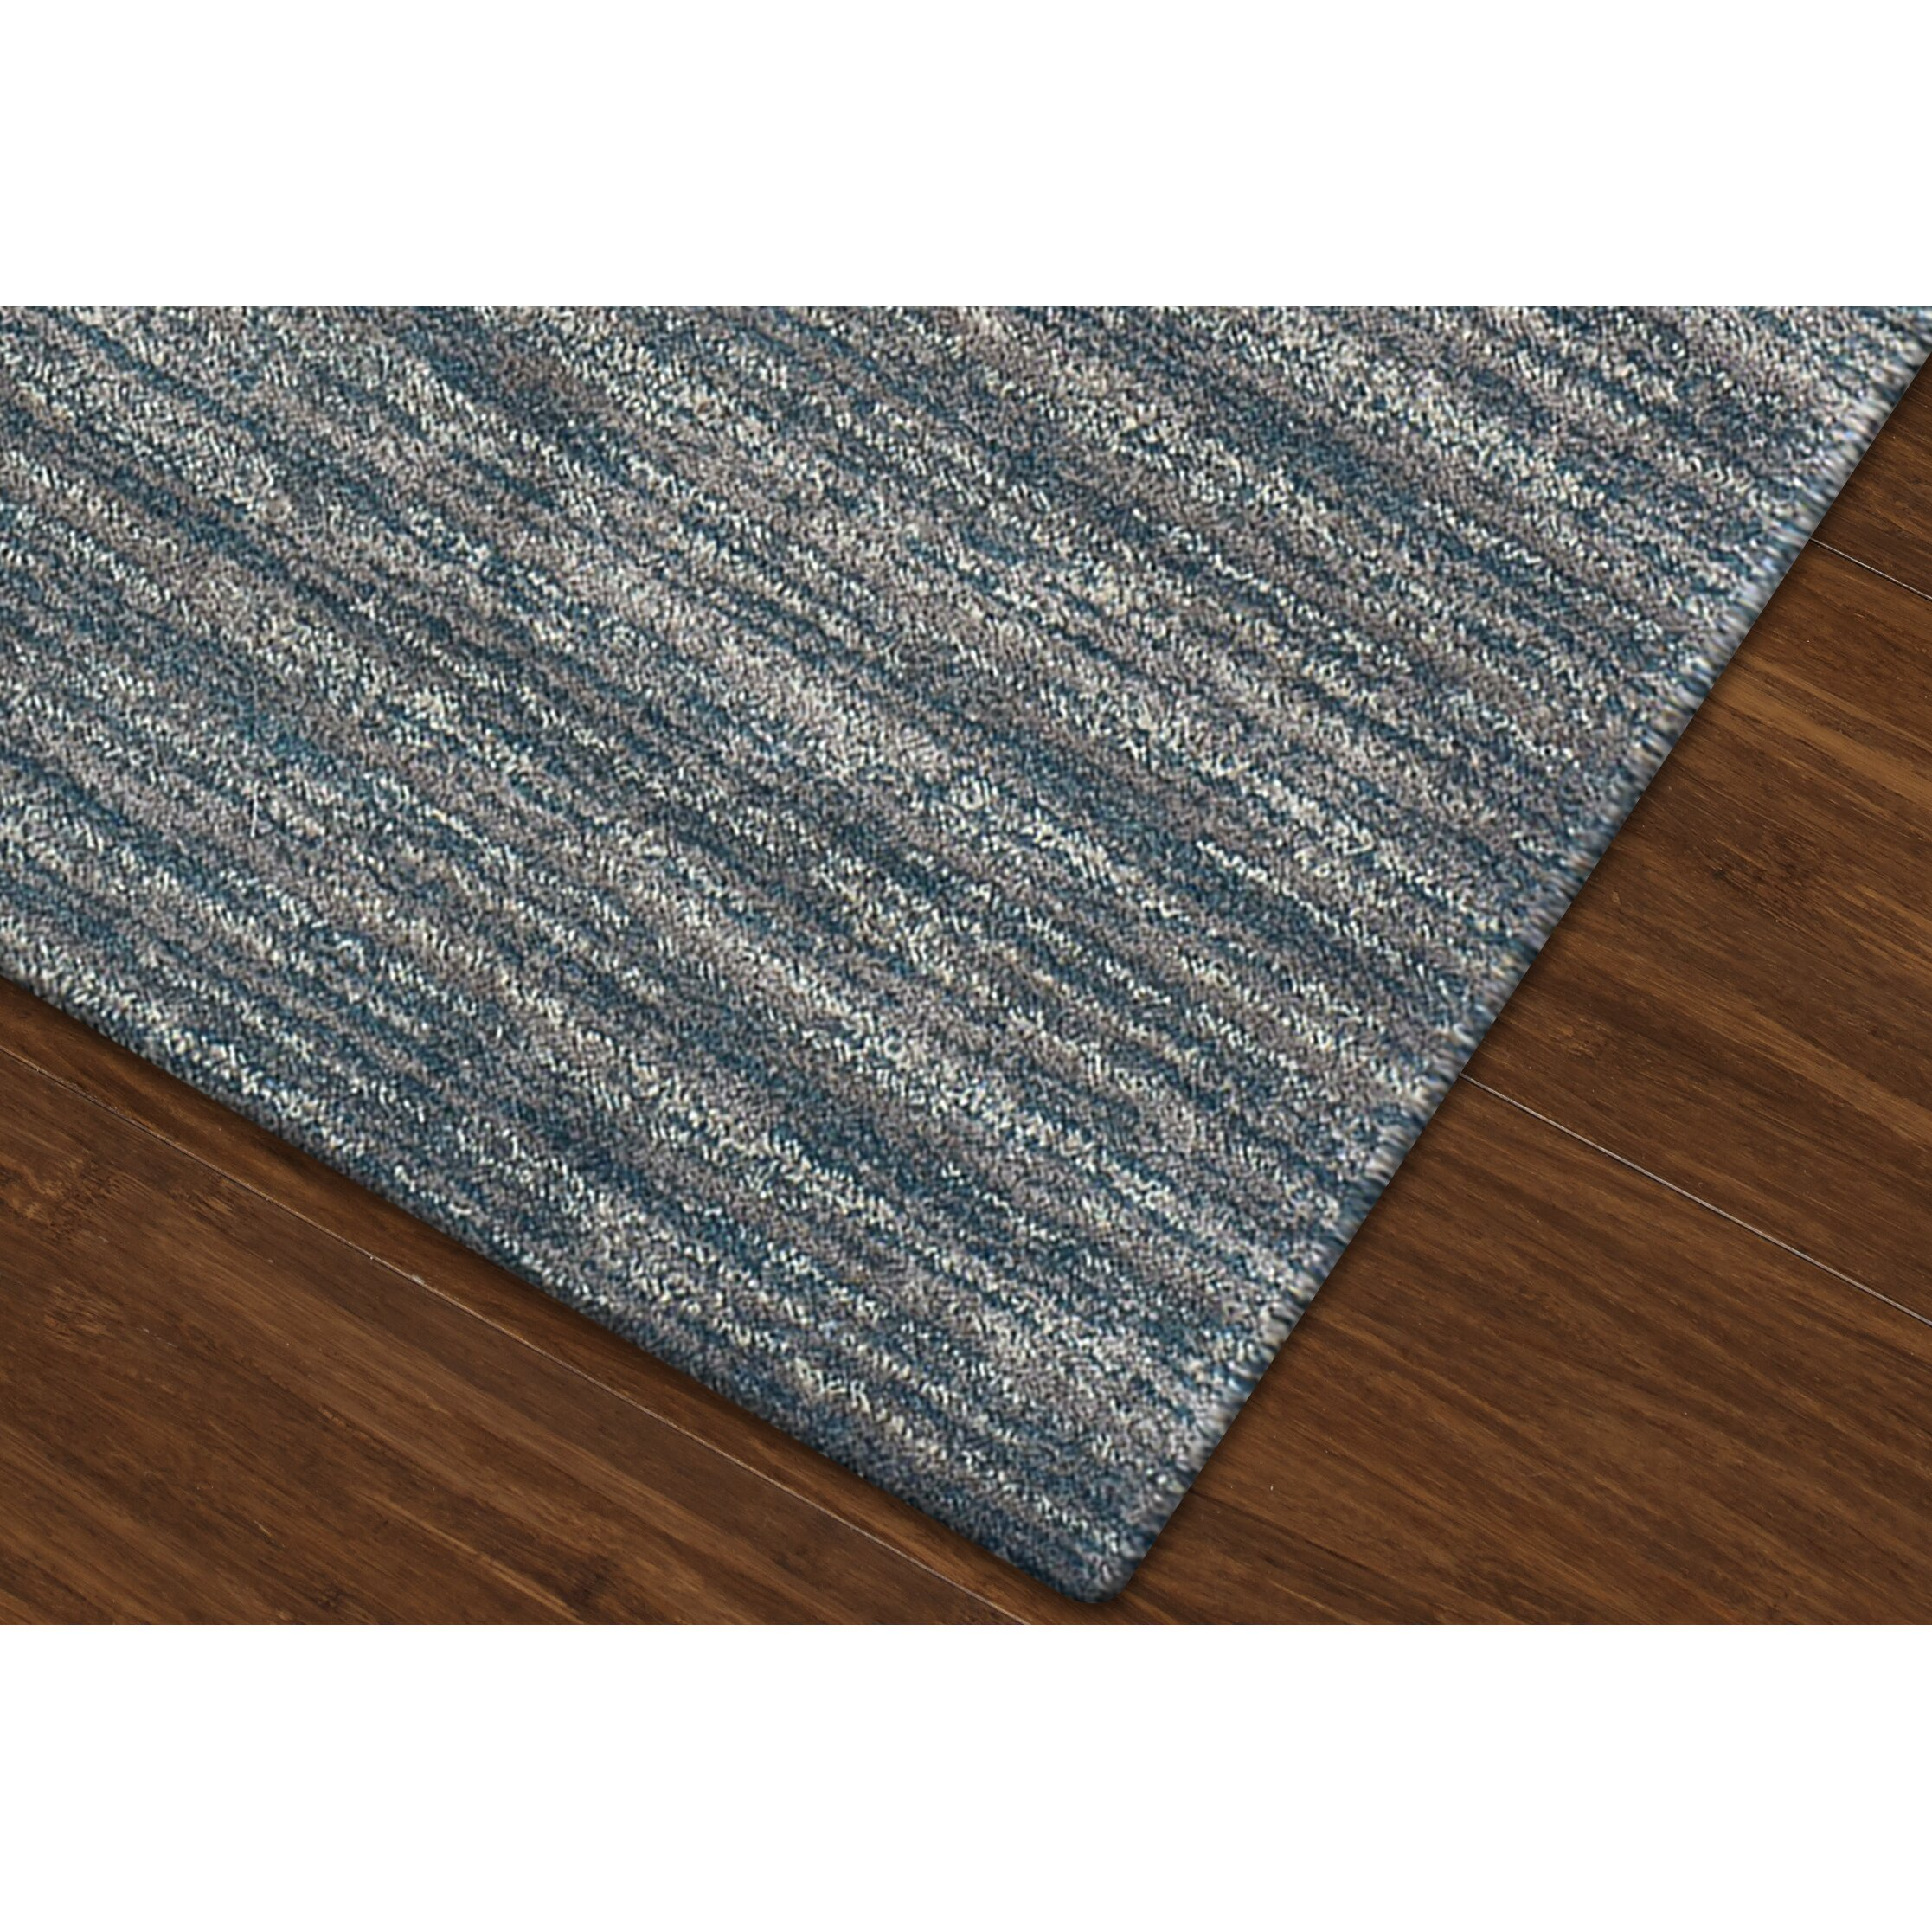 Dalyn Rug Co. Borgo Dalyn Teal Area Rug